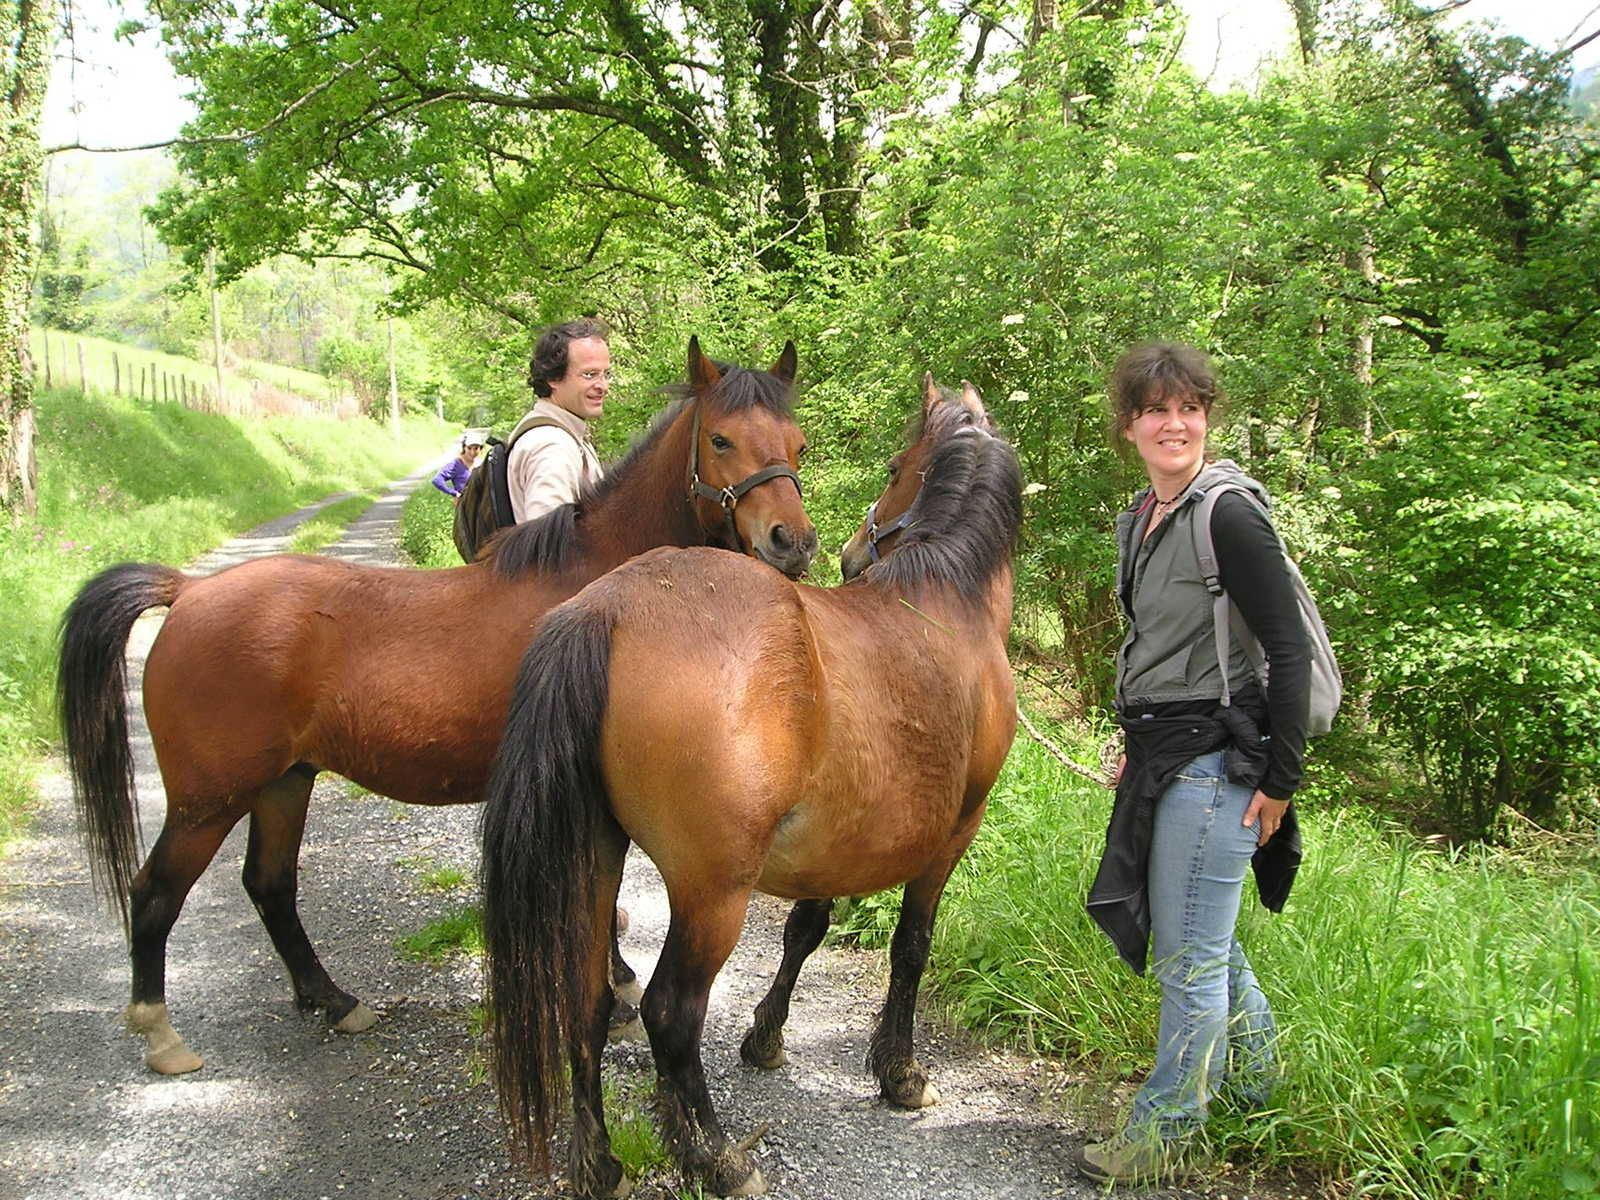 Poneys basques et Trait breton, les surprises de la route.